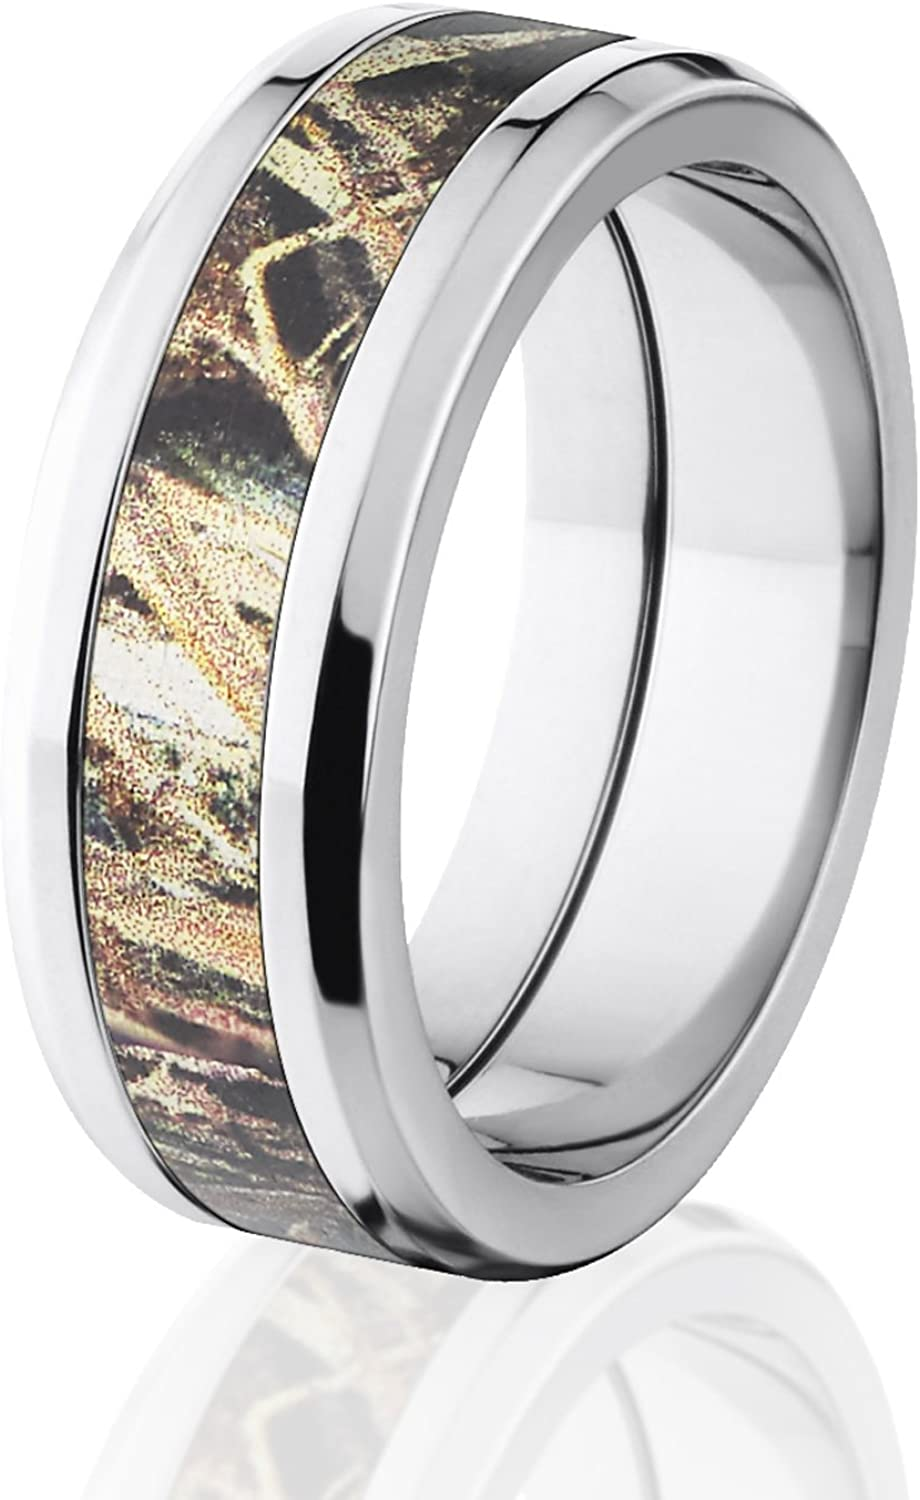 Duck Blind Mossy Oak Camo Rings, Camouflage Wedding Rings, Camo Bands